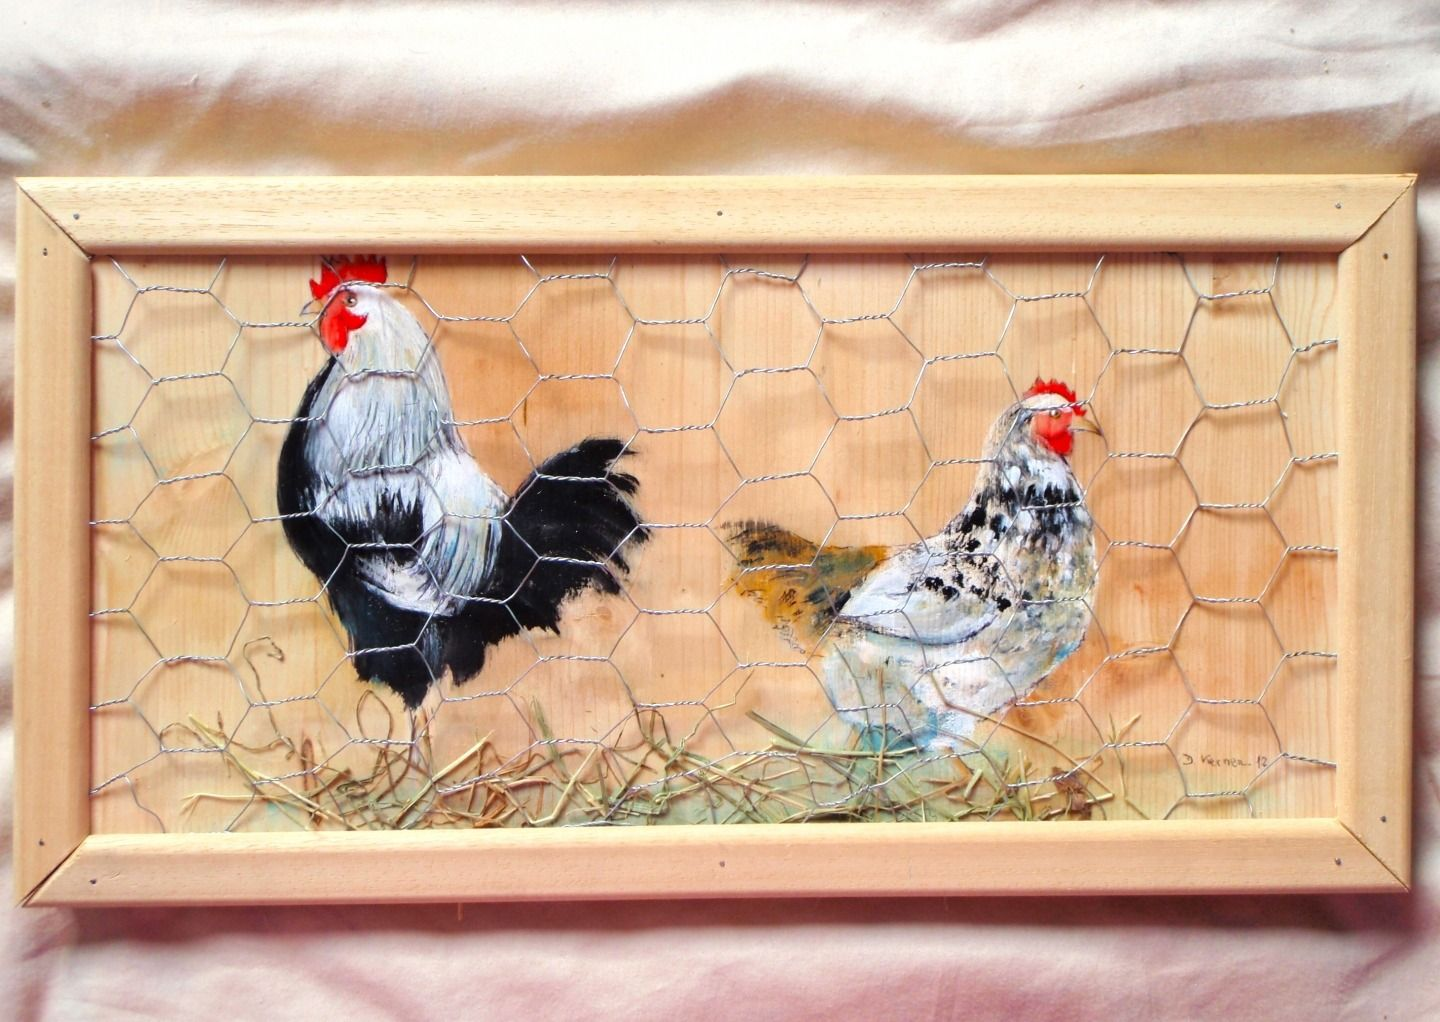 peintures peinture sur bois avec une poule poules. Black Bedroom Furniture Sets. Home Design Ideas